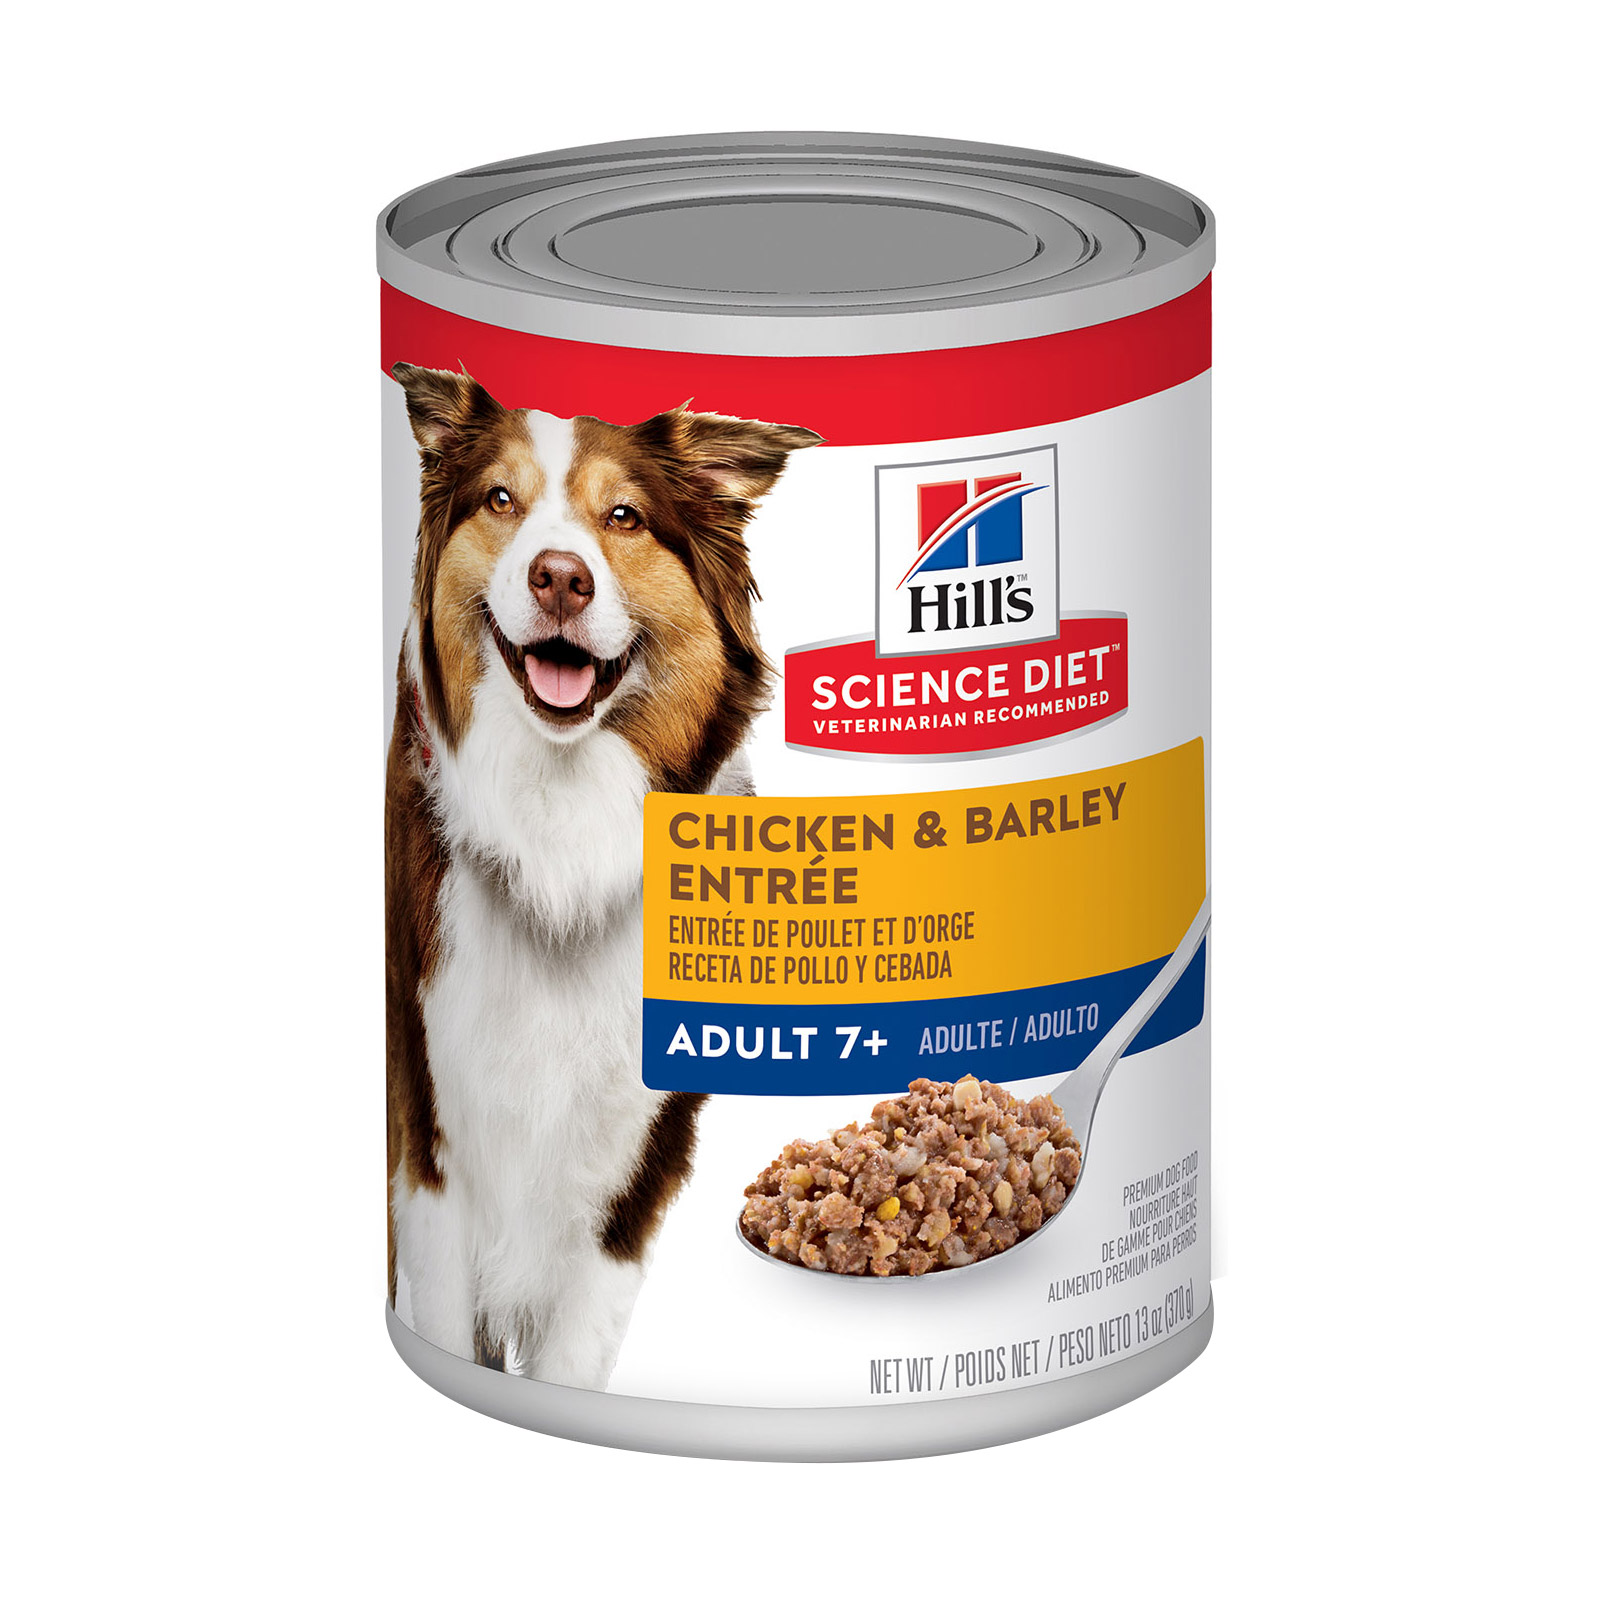 Hill's Science Diet Adult 7+ Chicken & Barley Entrée Senior Canned Dog Food